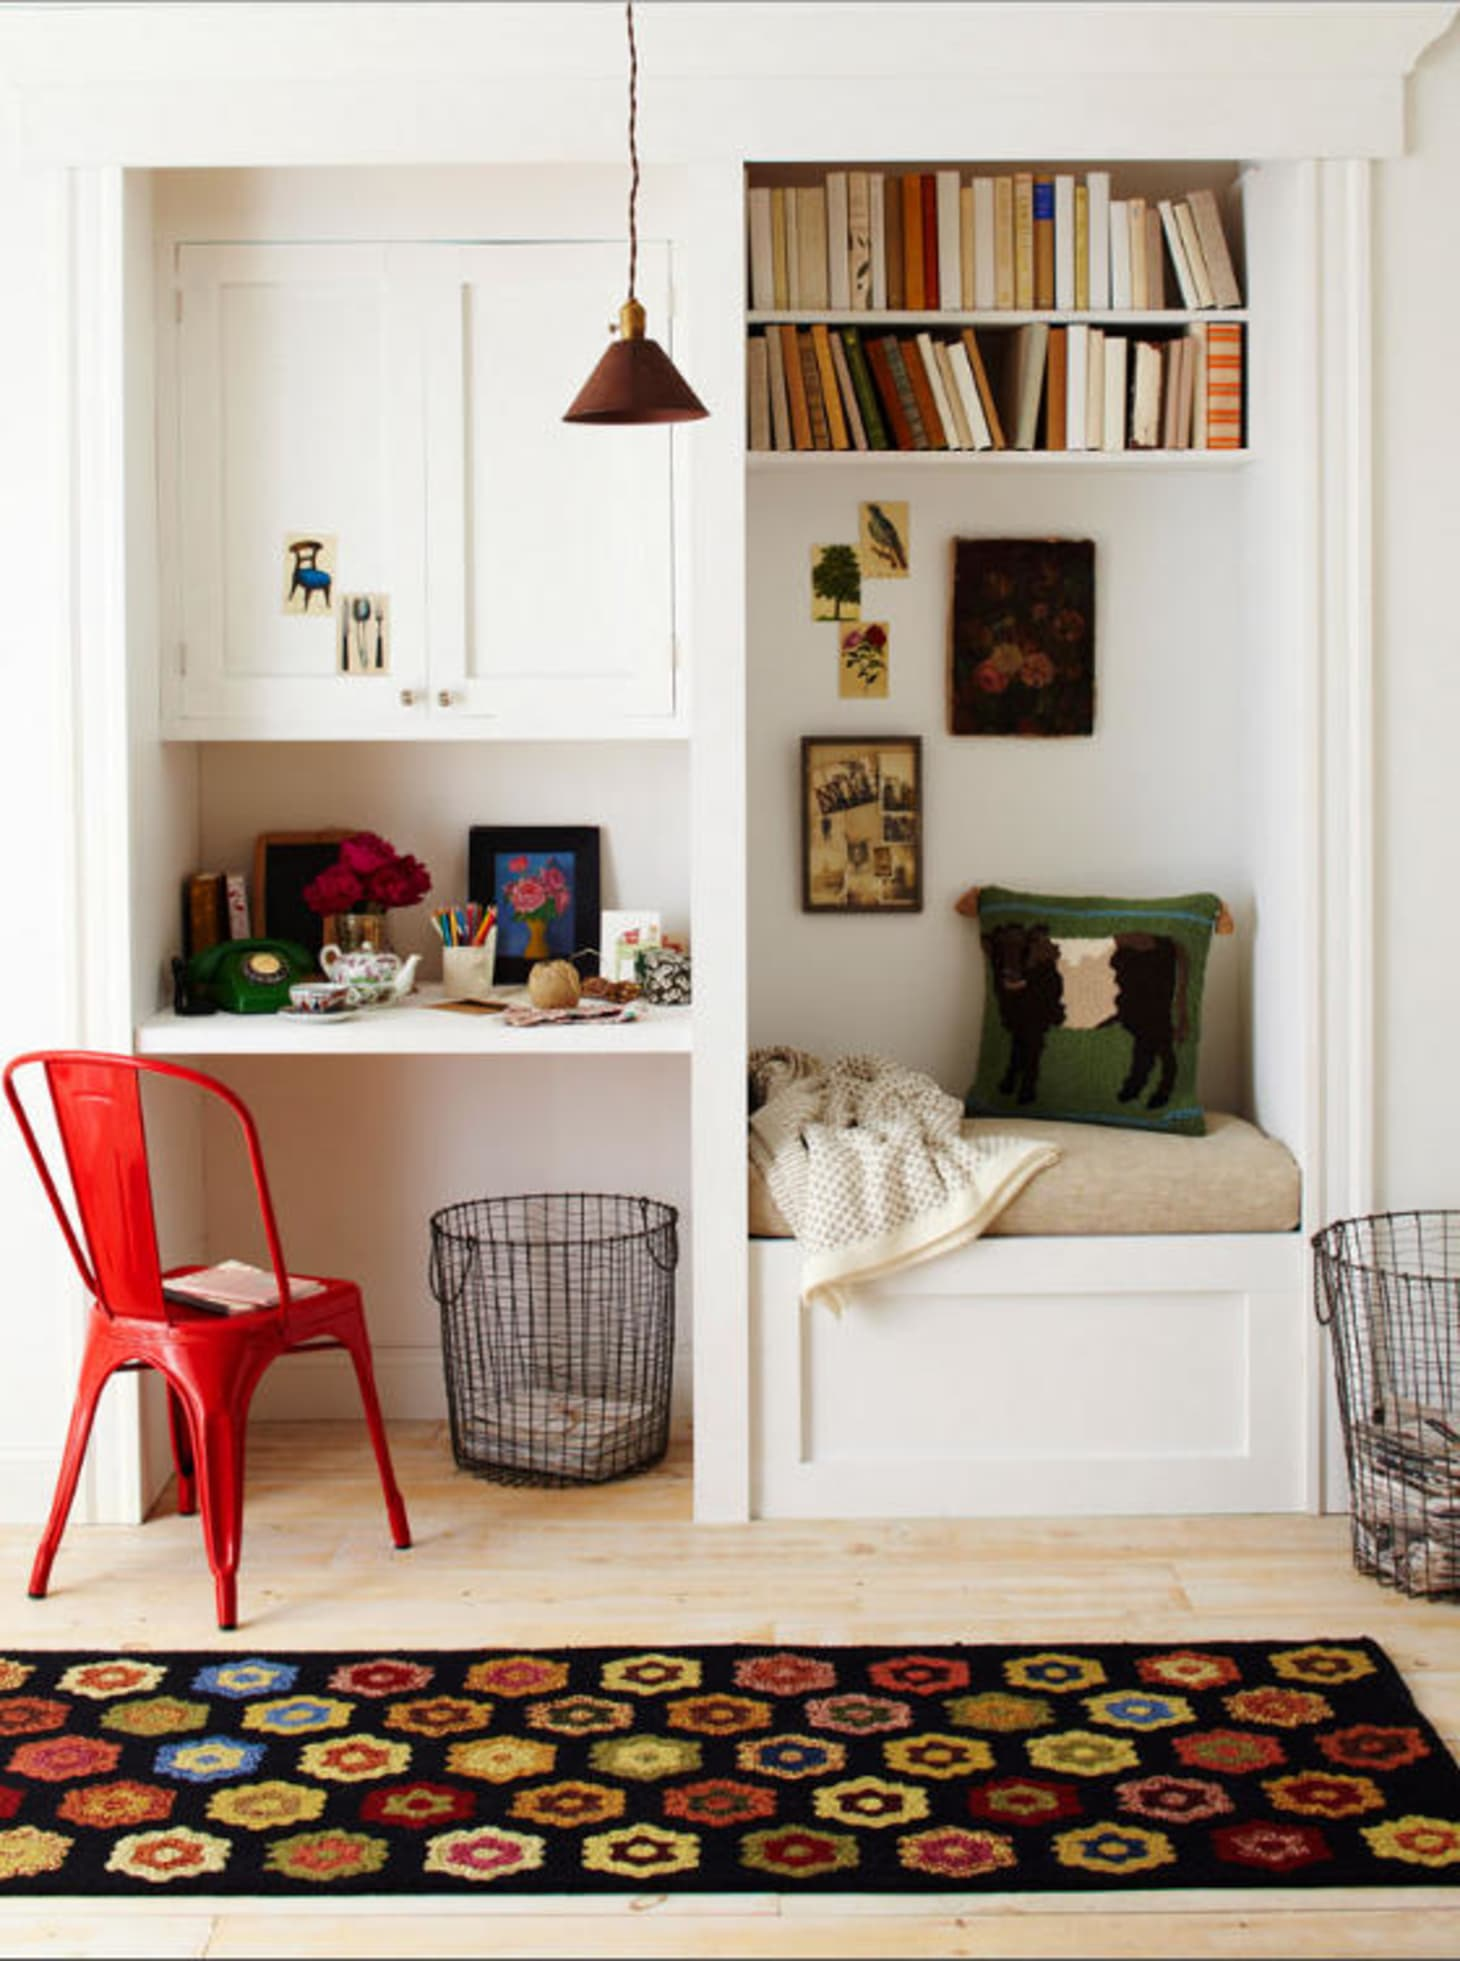 Living Room Study: How To Fit A Reading Nook Into The Smallest Of Spaces